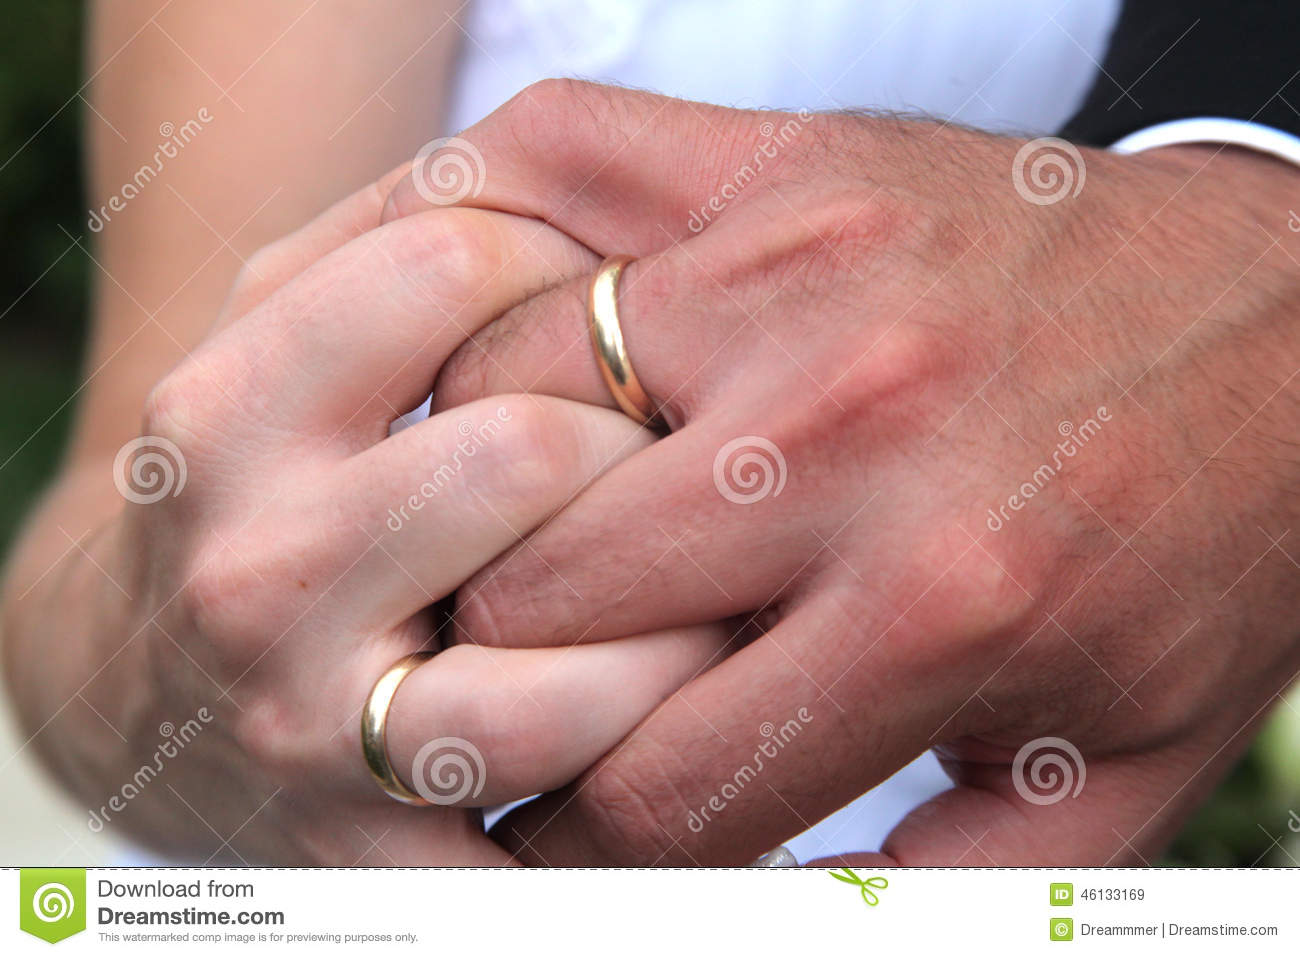 Entwined Hands Honeymooners Stock Image - Image of partner, hold ...